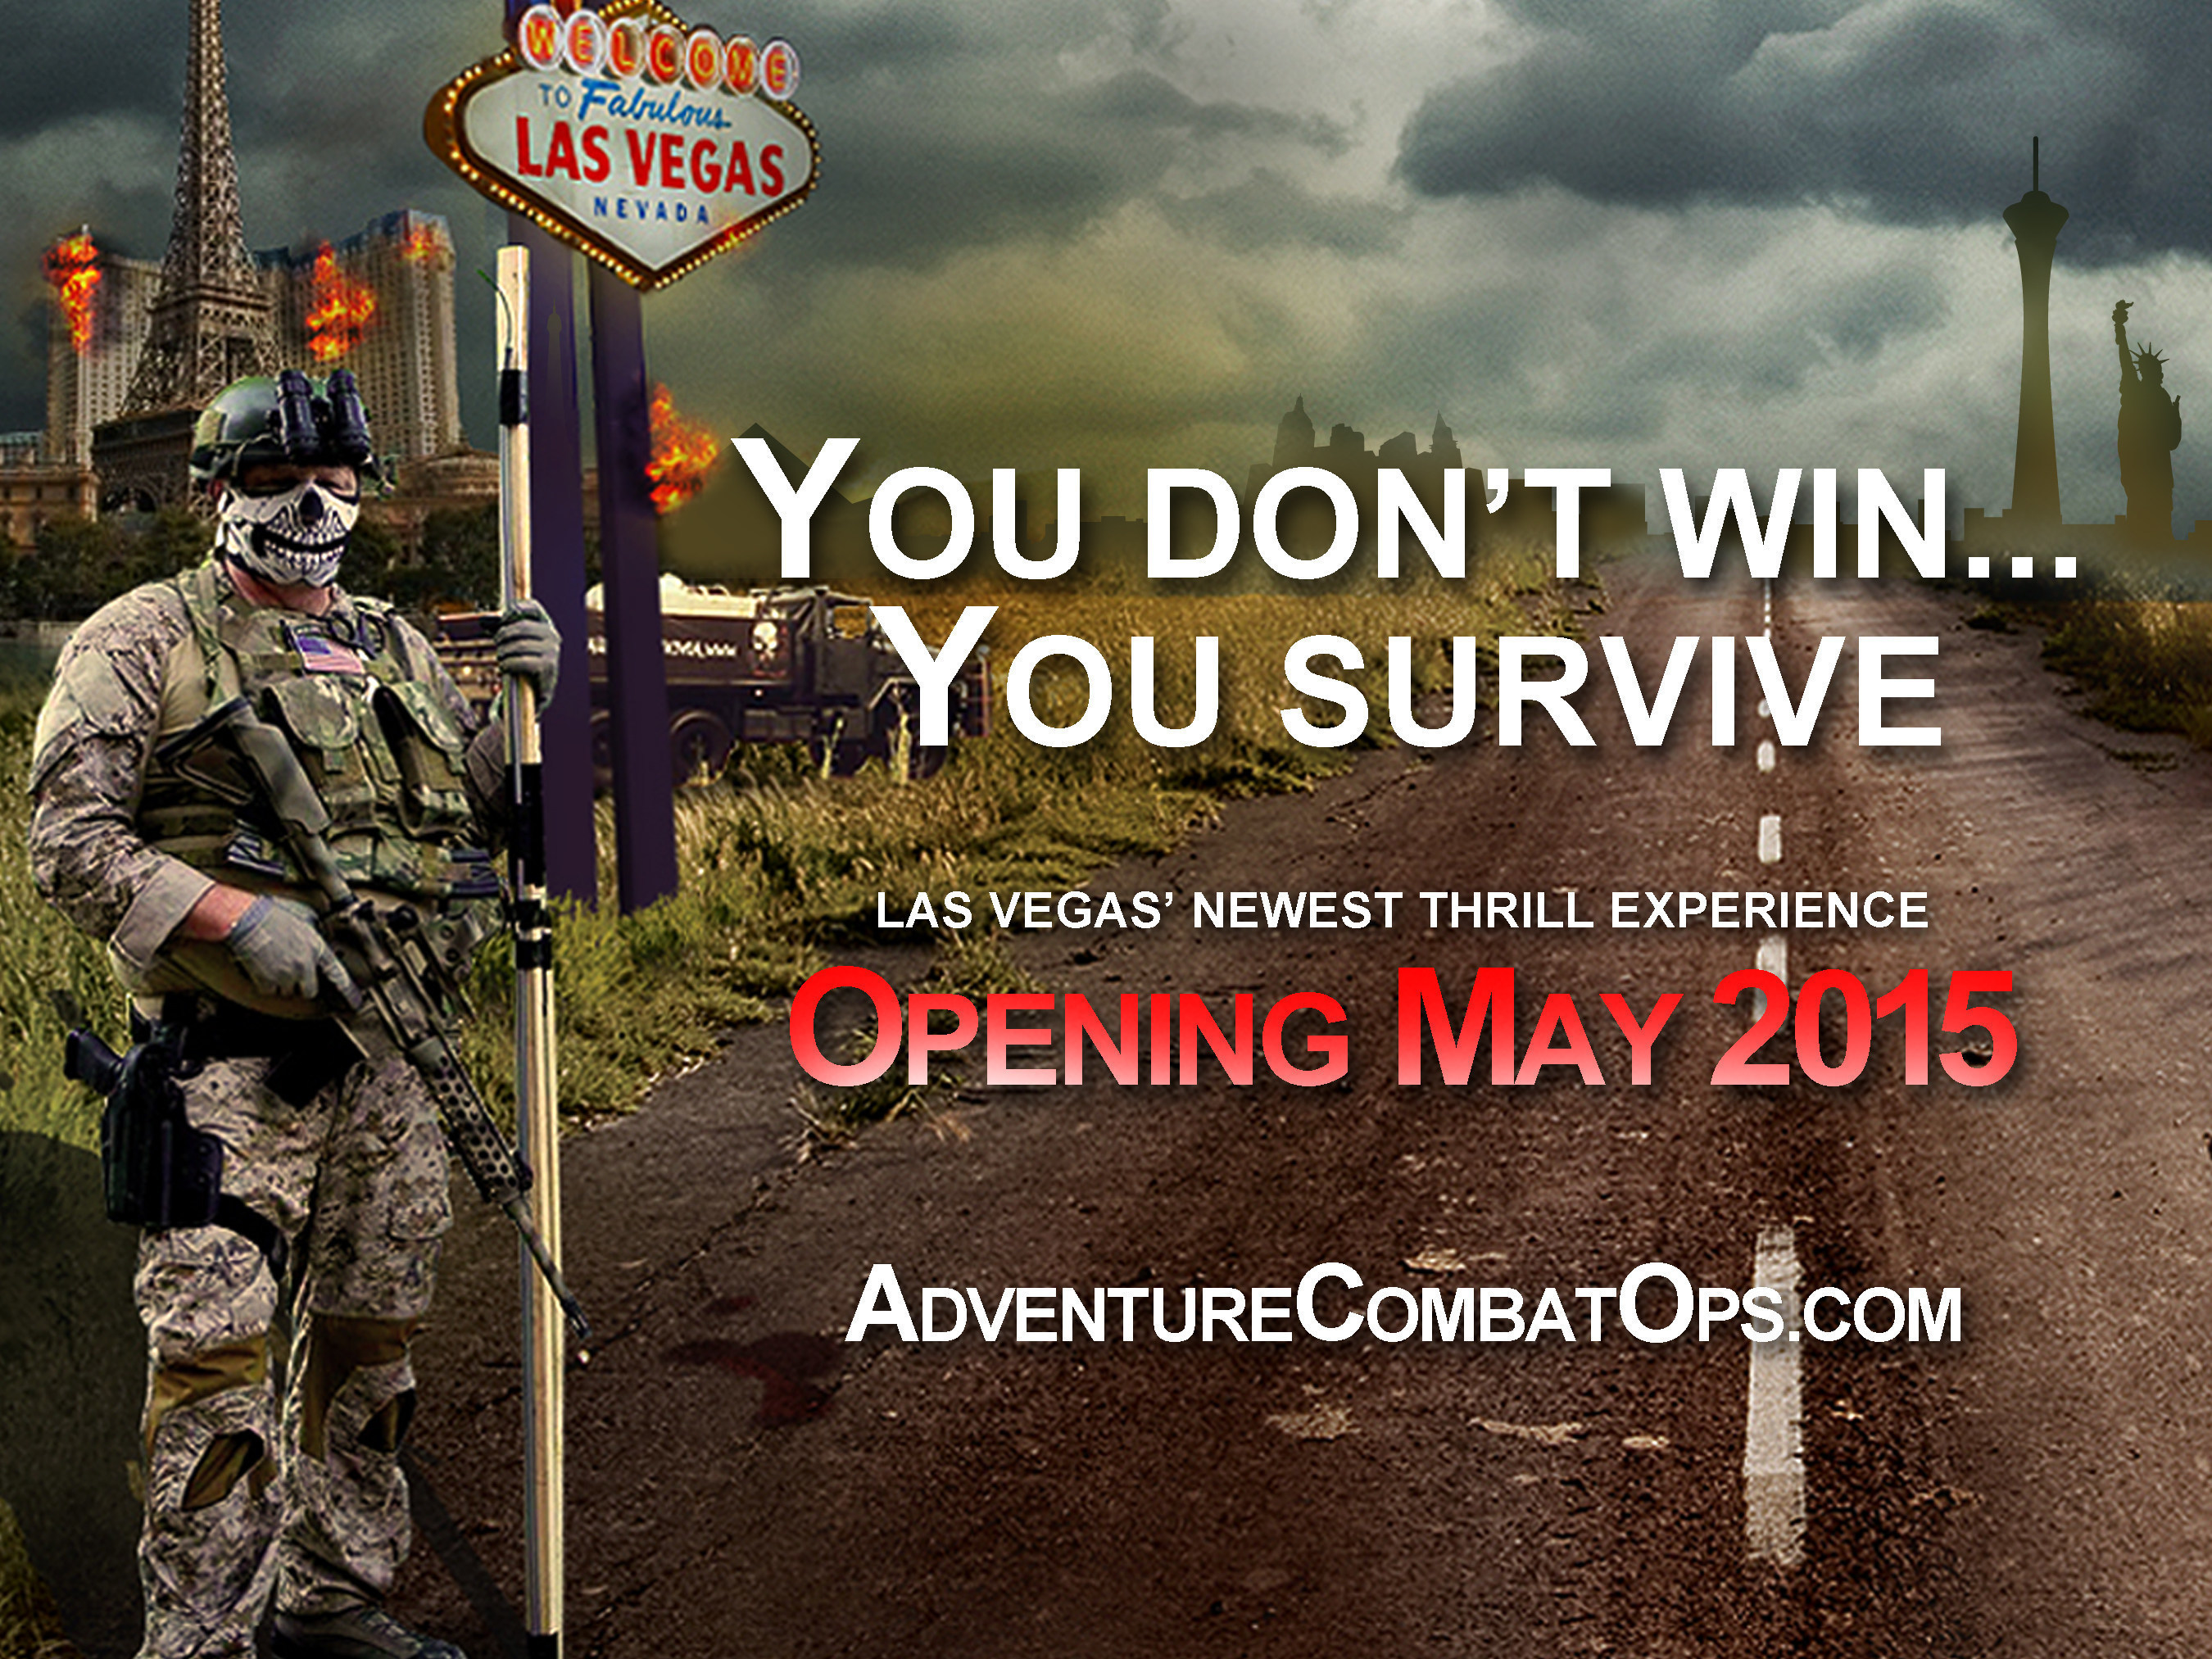 Adventure Combat Ops Brings The Most Realistic, Apocalyptic, Combat Simulation In The World To Las Vegas